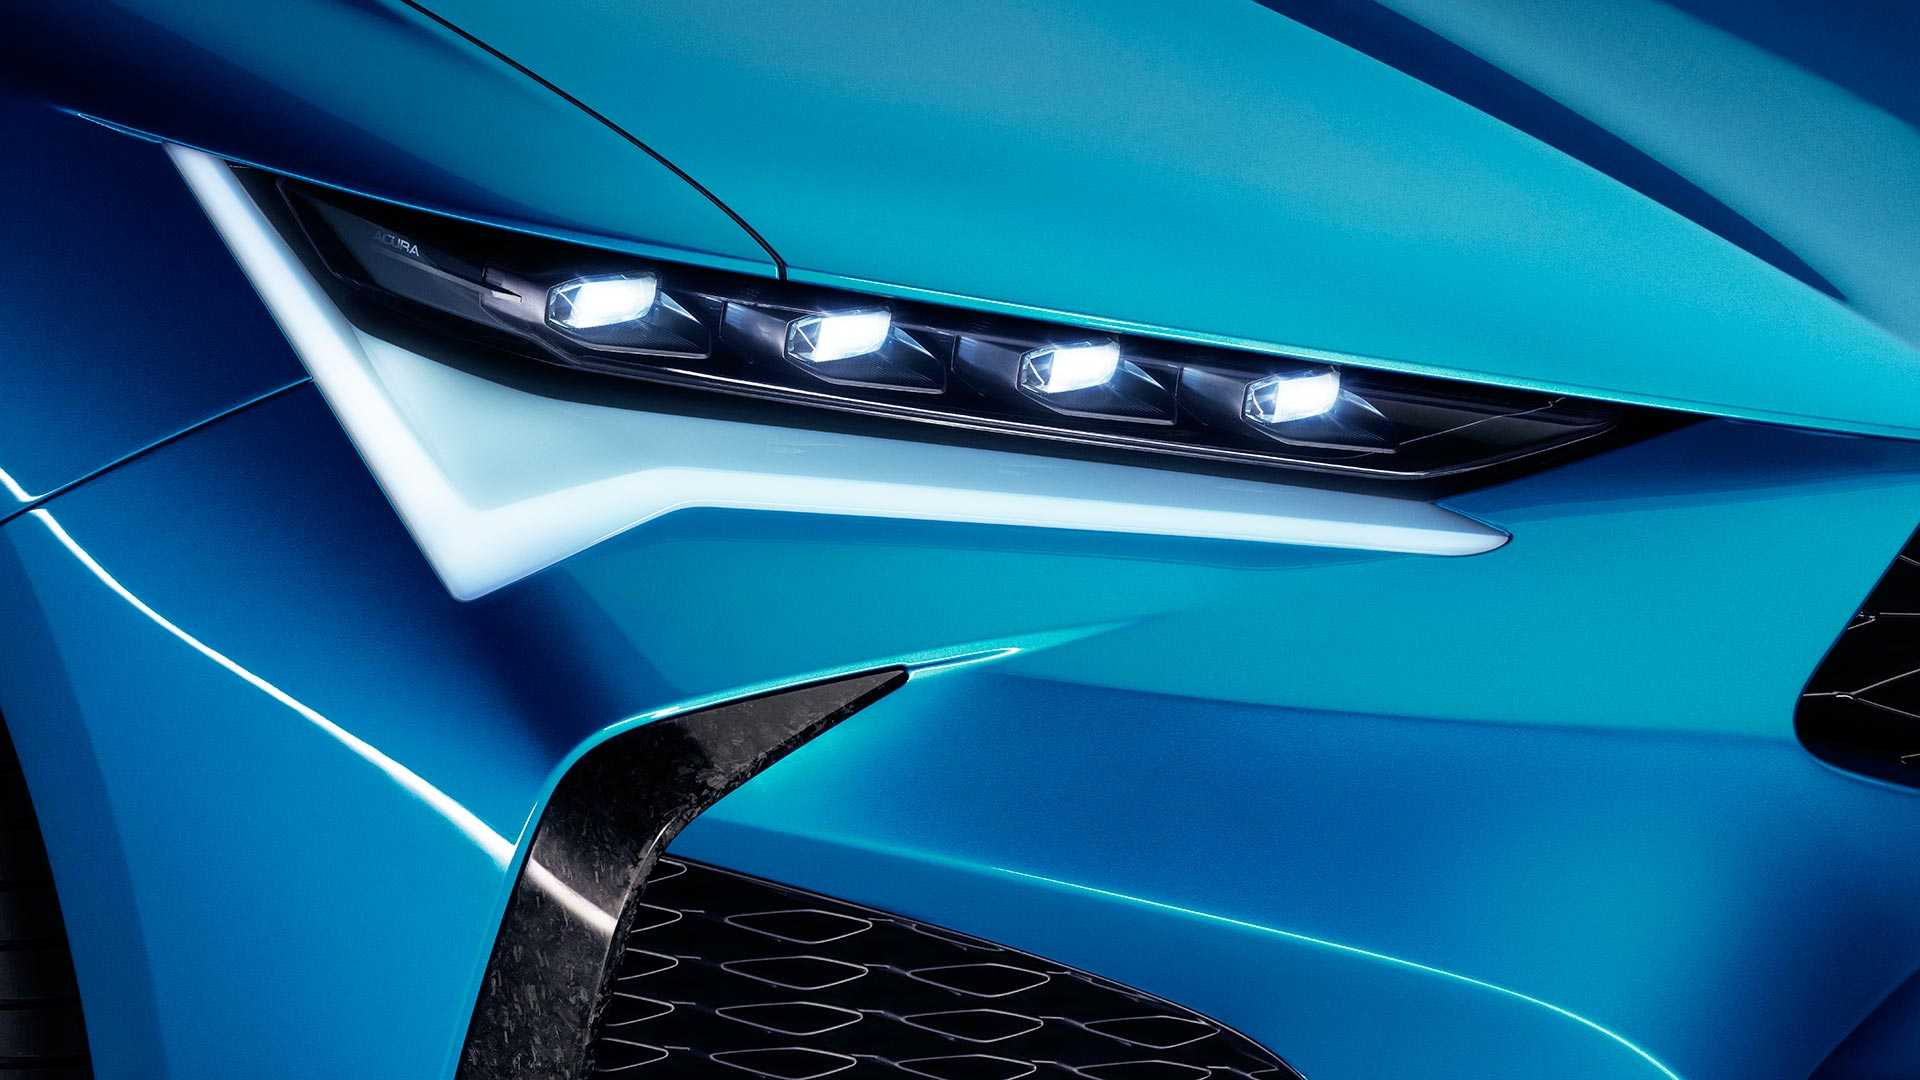 2019 Acura Type S Concept Headlight Wallpapers (10)